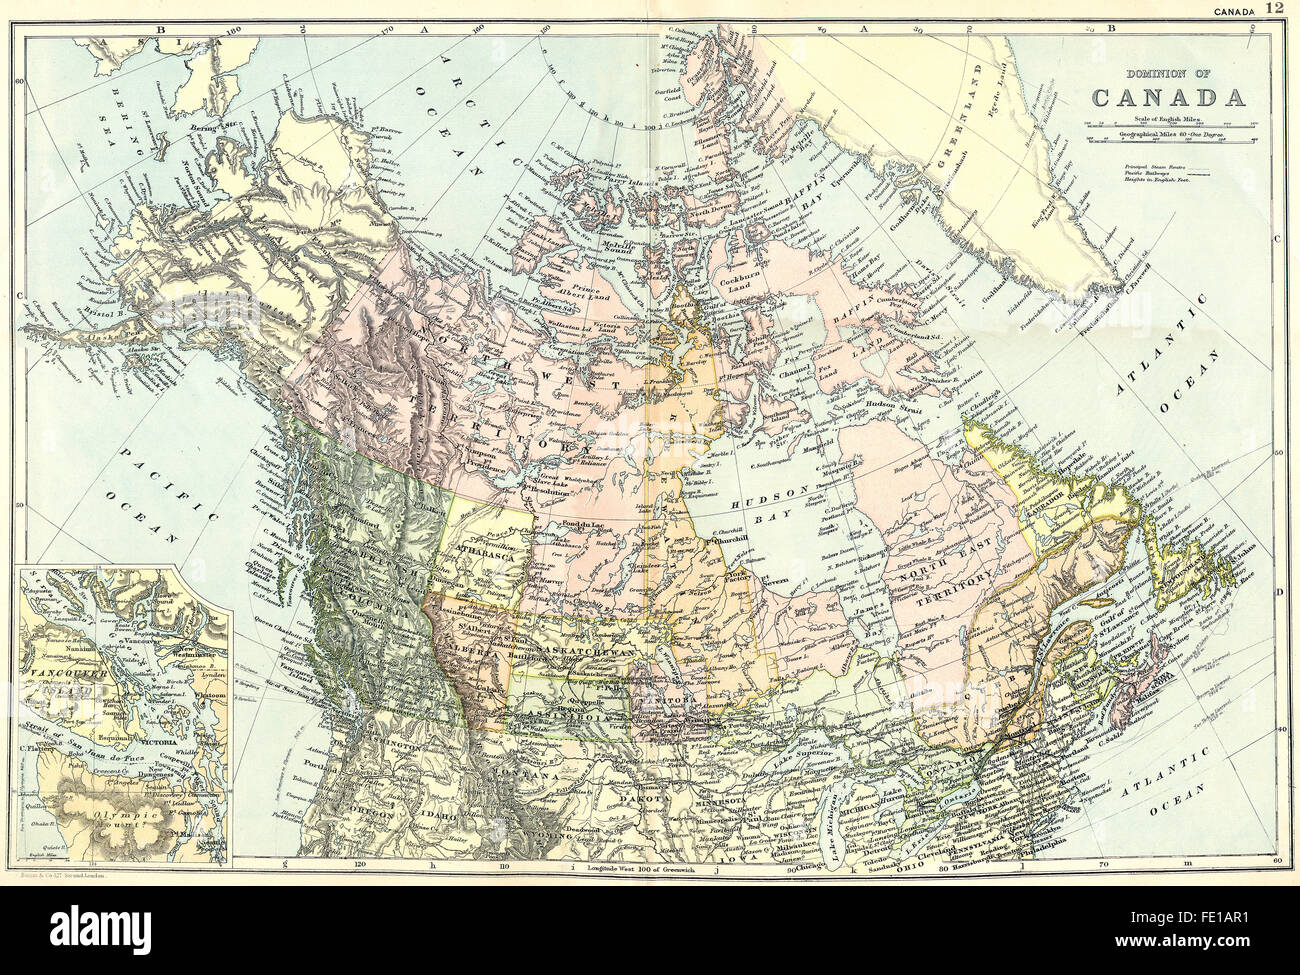 Map Of Canada 1905.Canada Dominion Of Vancouver Island 1905 Antique Map Stock Photo